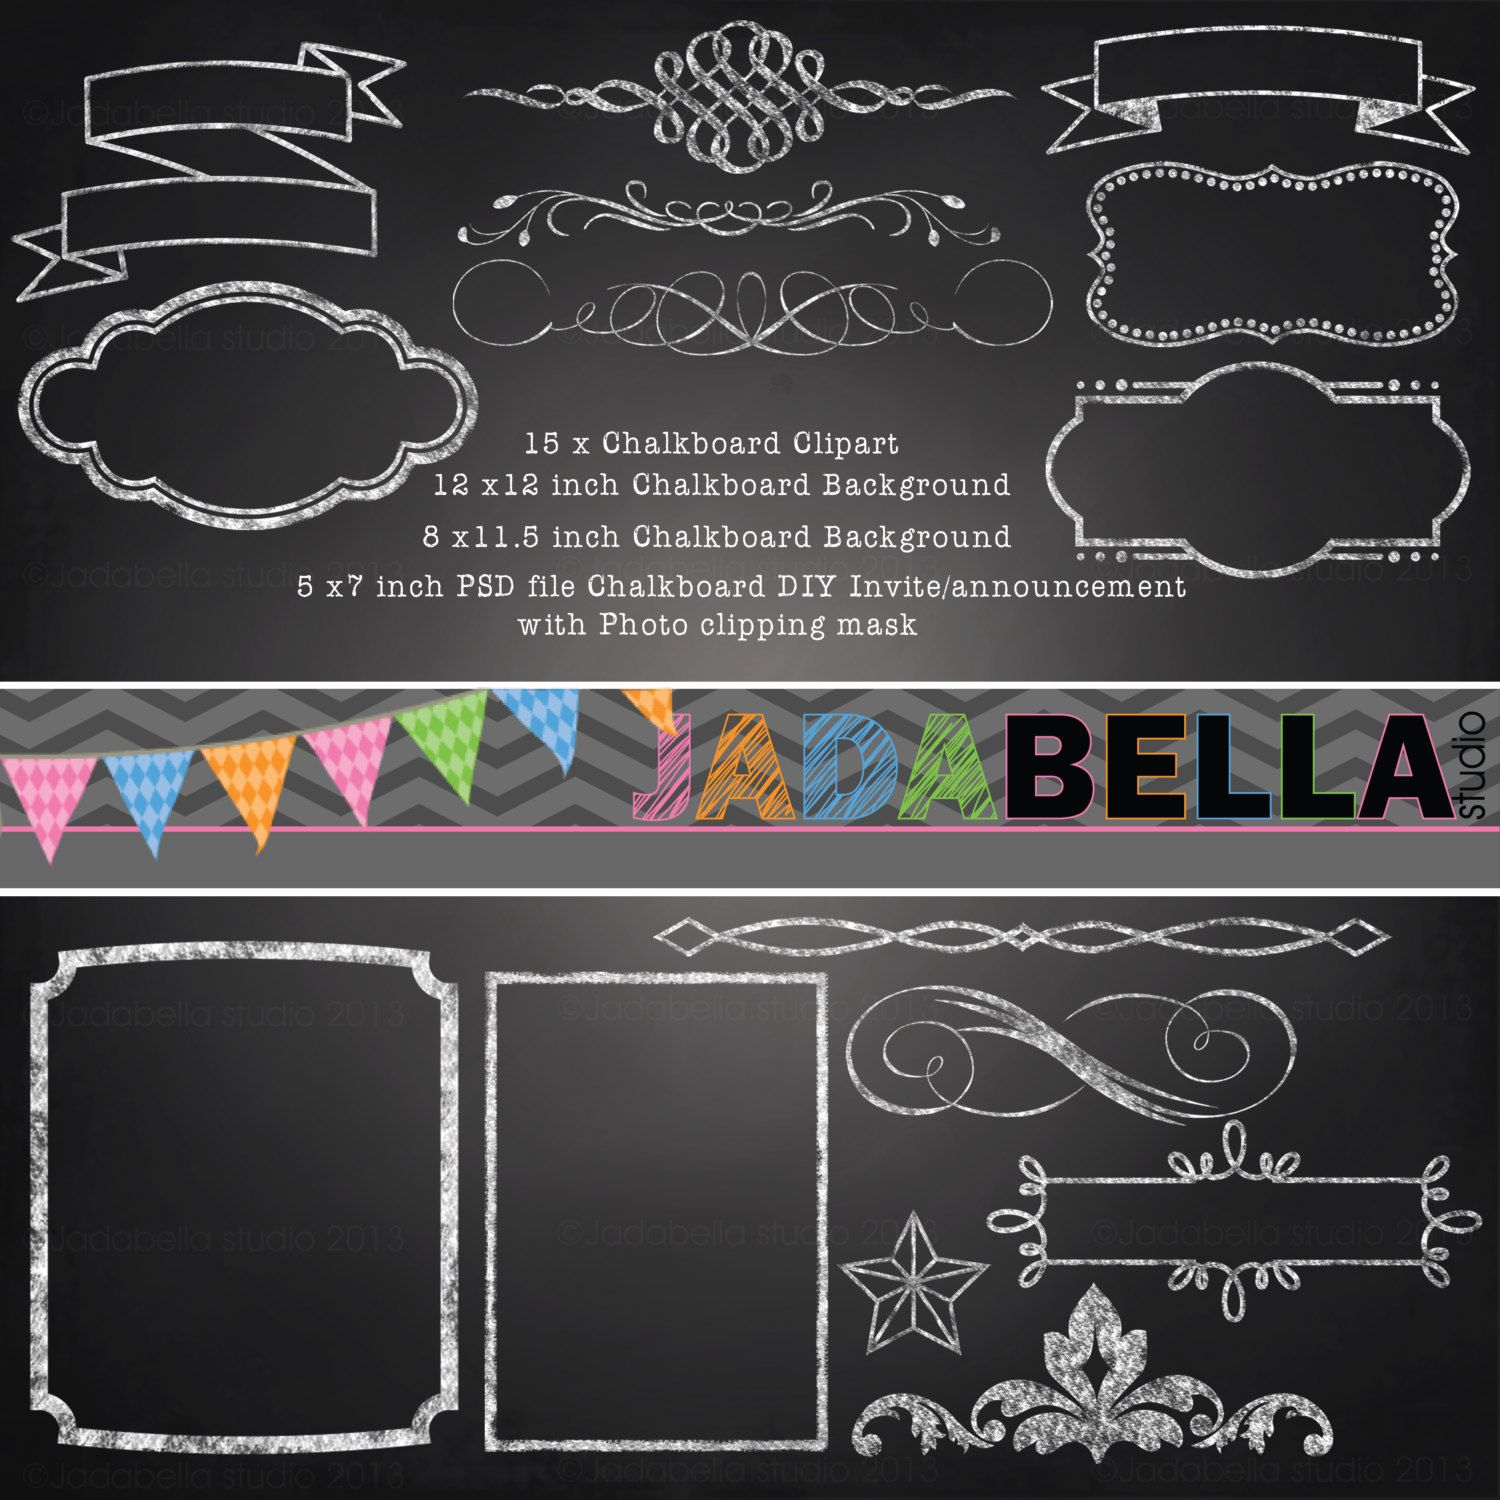 Chalkboard clipart download picture transparent download Instant Download Set of 15 Chalkboard Clipart 1 Photoshop Template ... picture transparent download